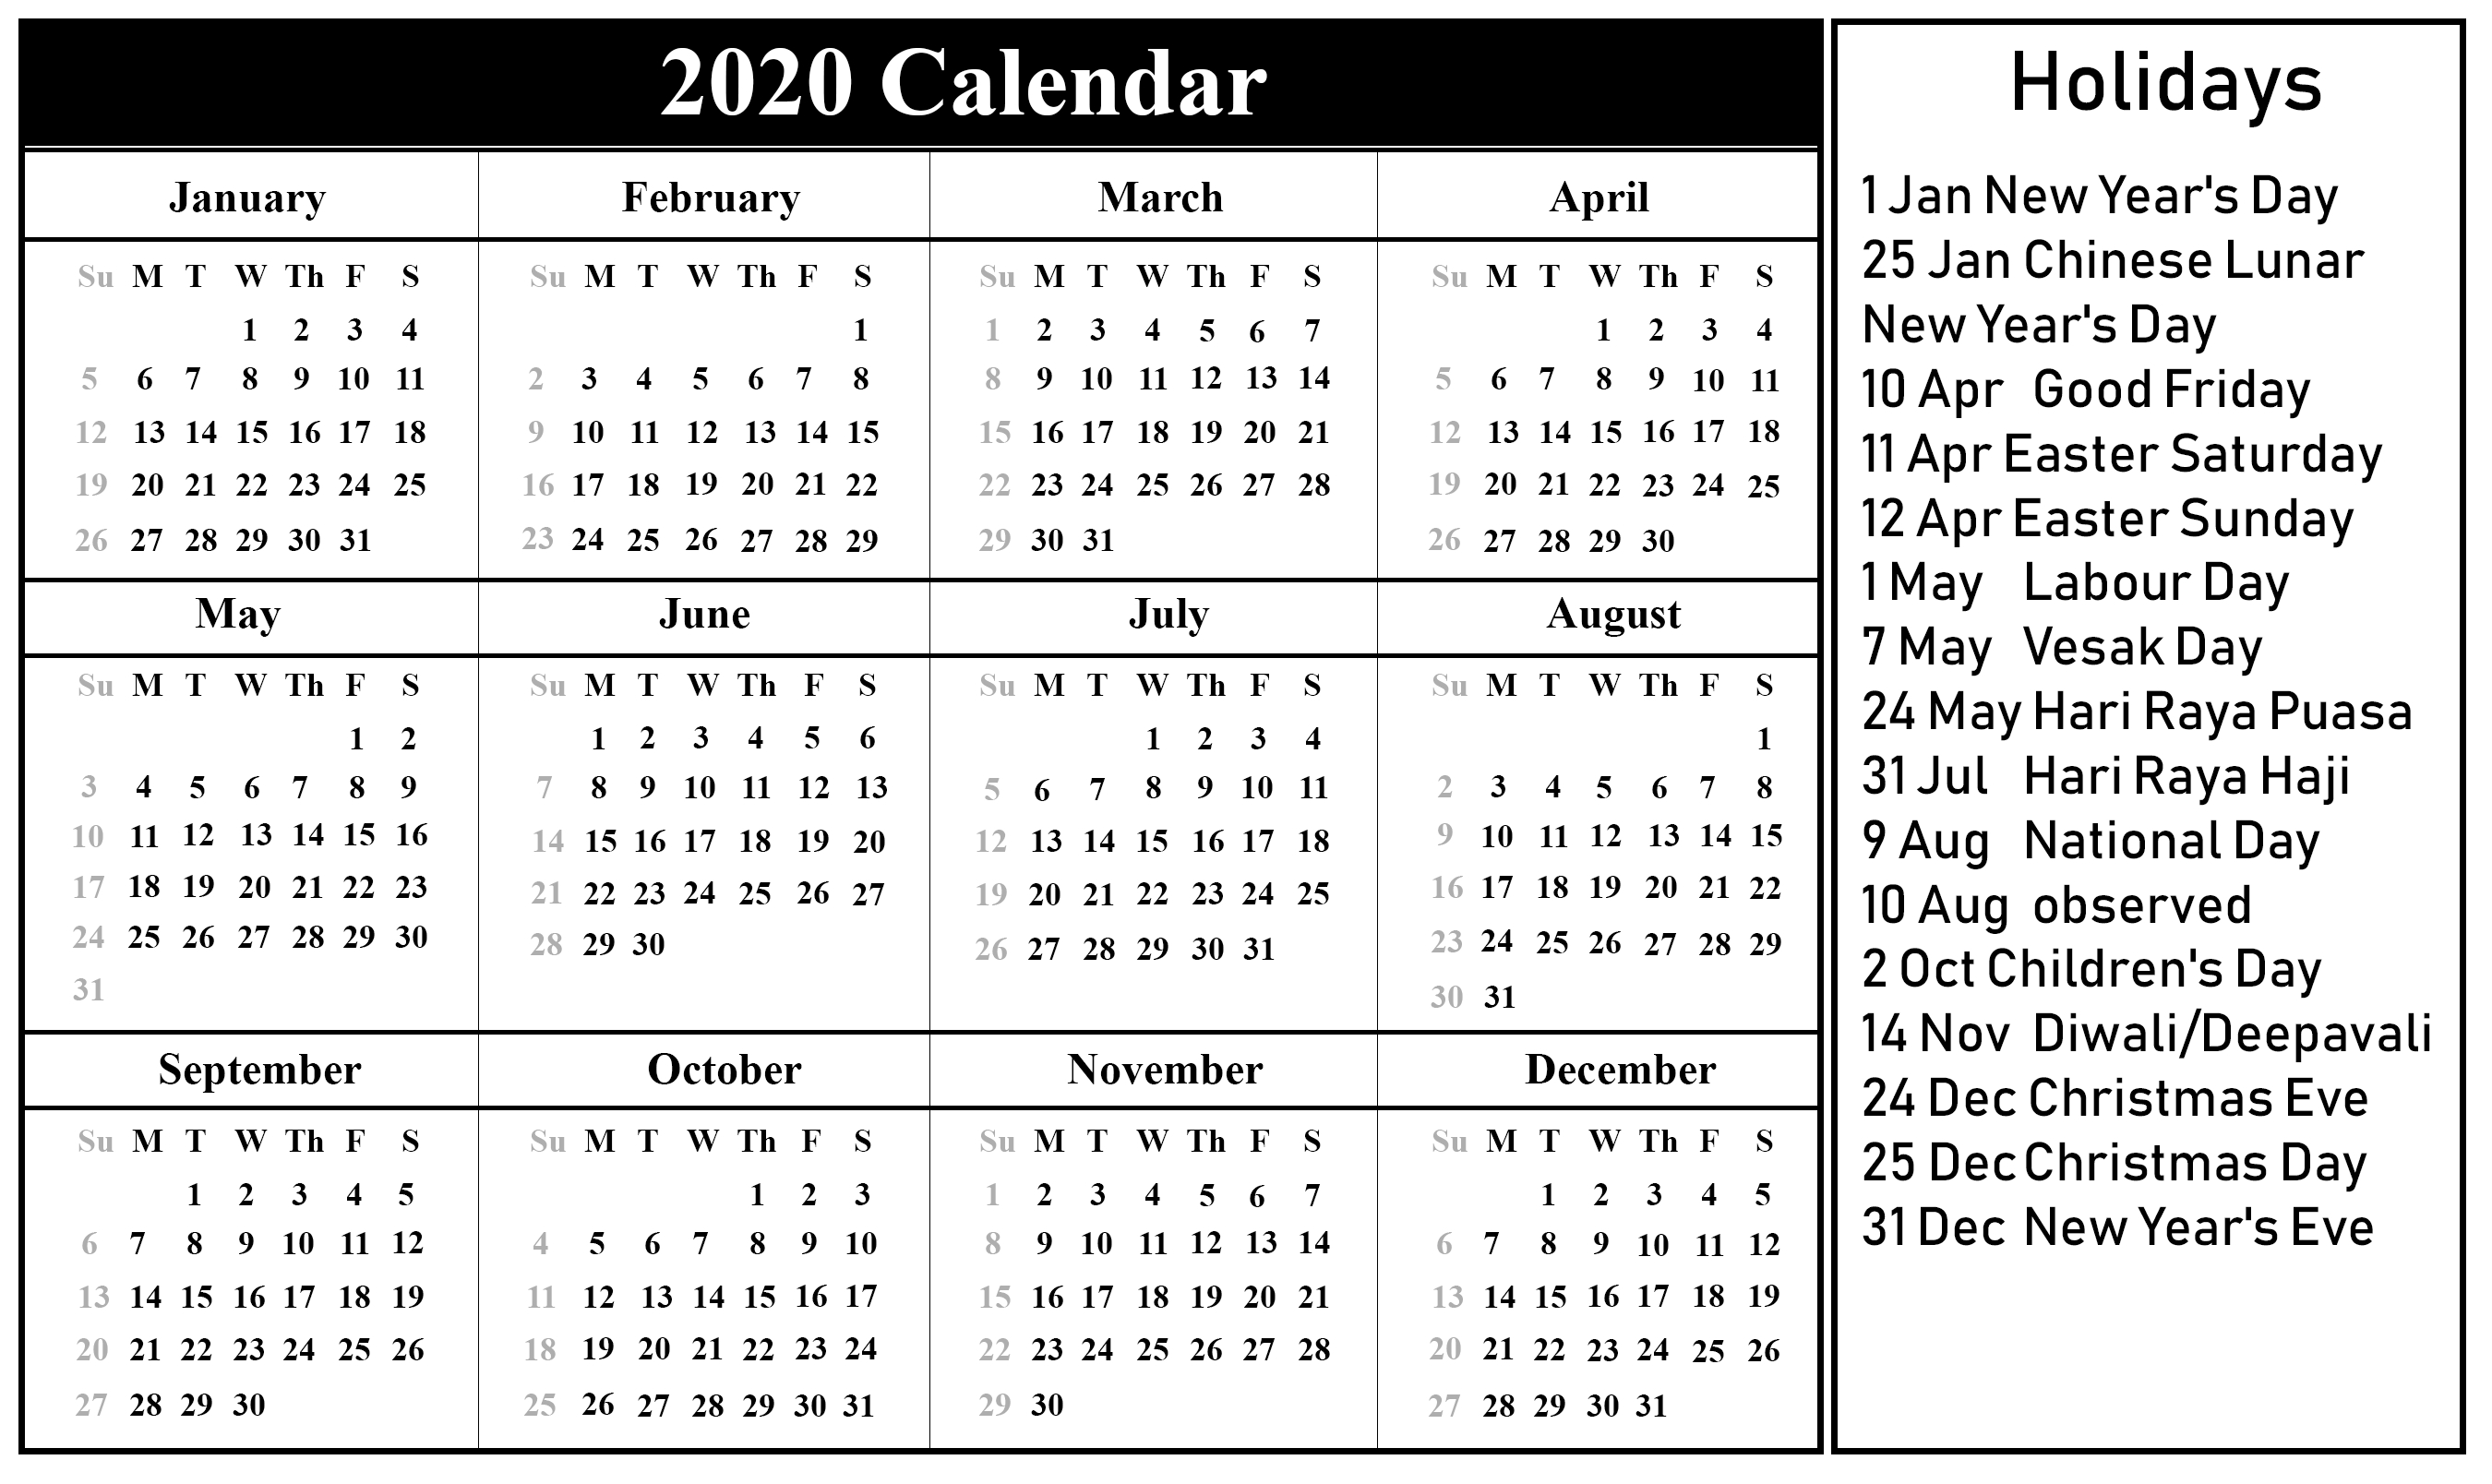 Printable 2020 Calendar With Holidays | Monthly Calendar-Printable Calendar 2020 With Bank Holidays